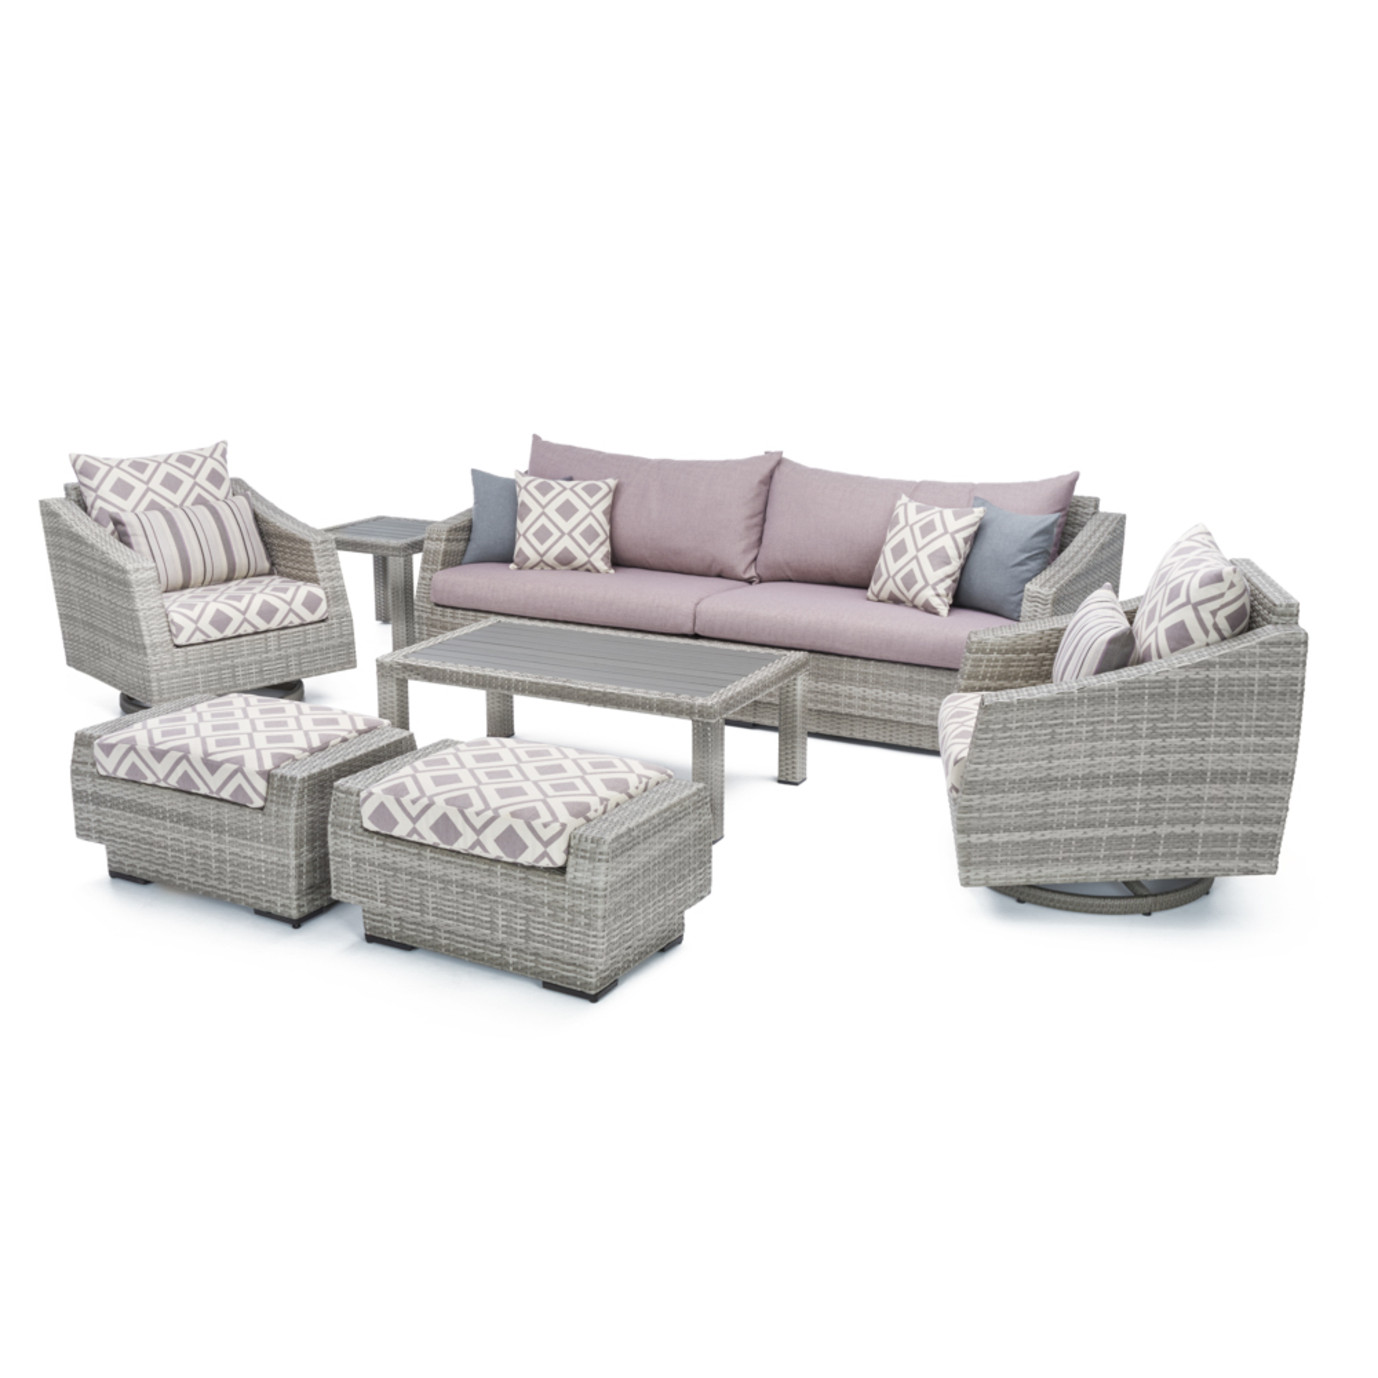 Cannes™ 8pc Sofa & Club Chair Set - Wisteria Lavender Design